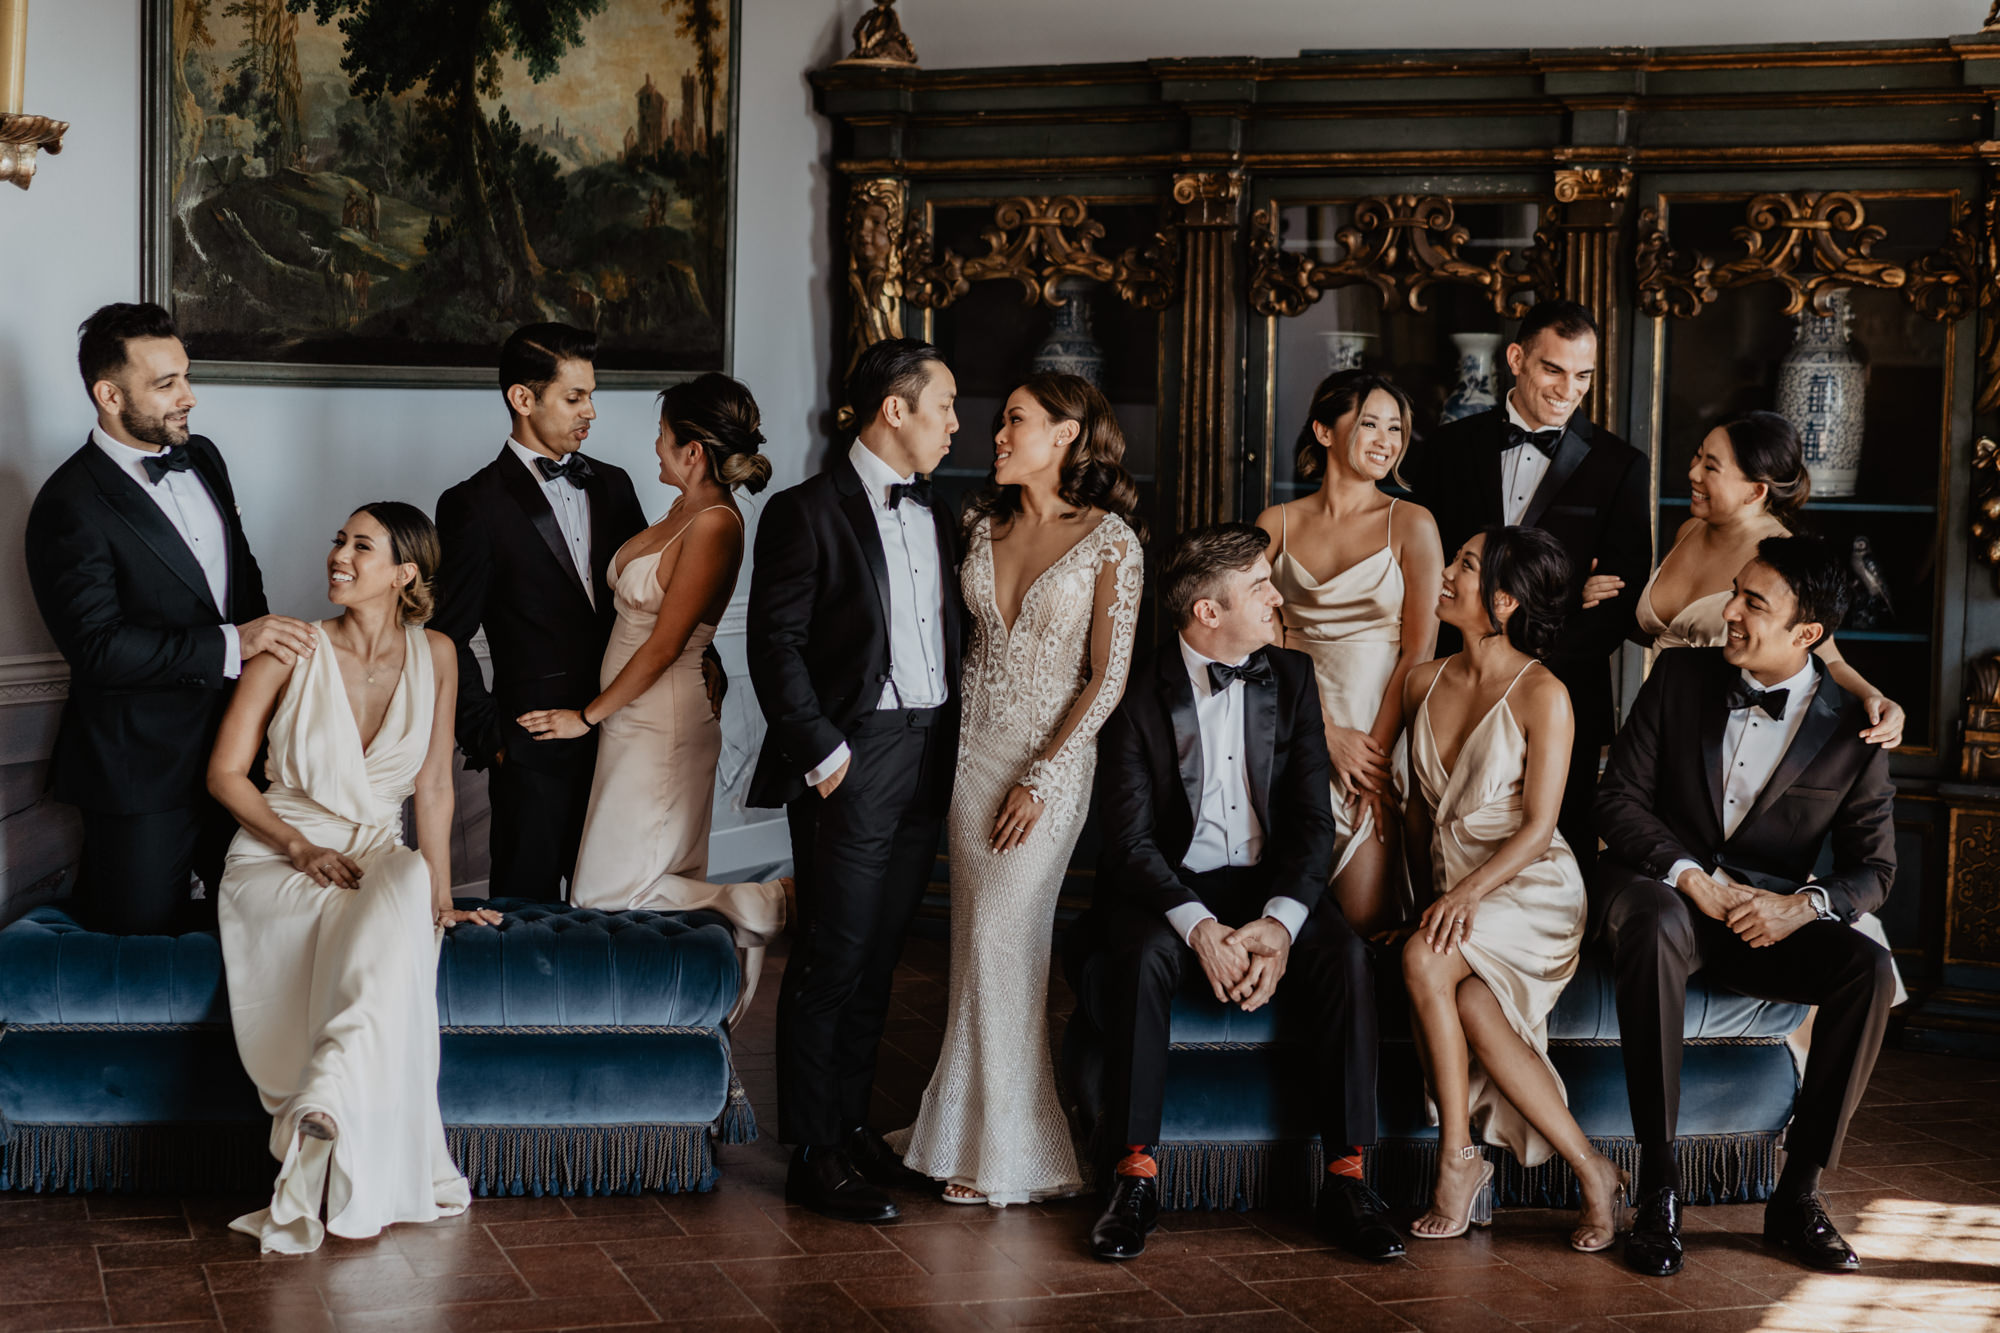 Bridal party black tie portrait by David Bastianoni